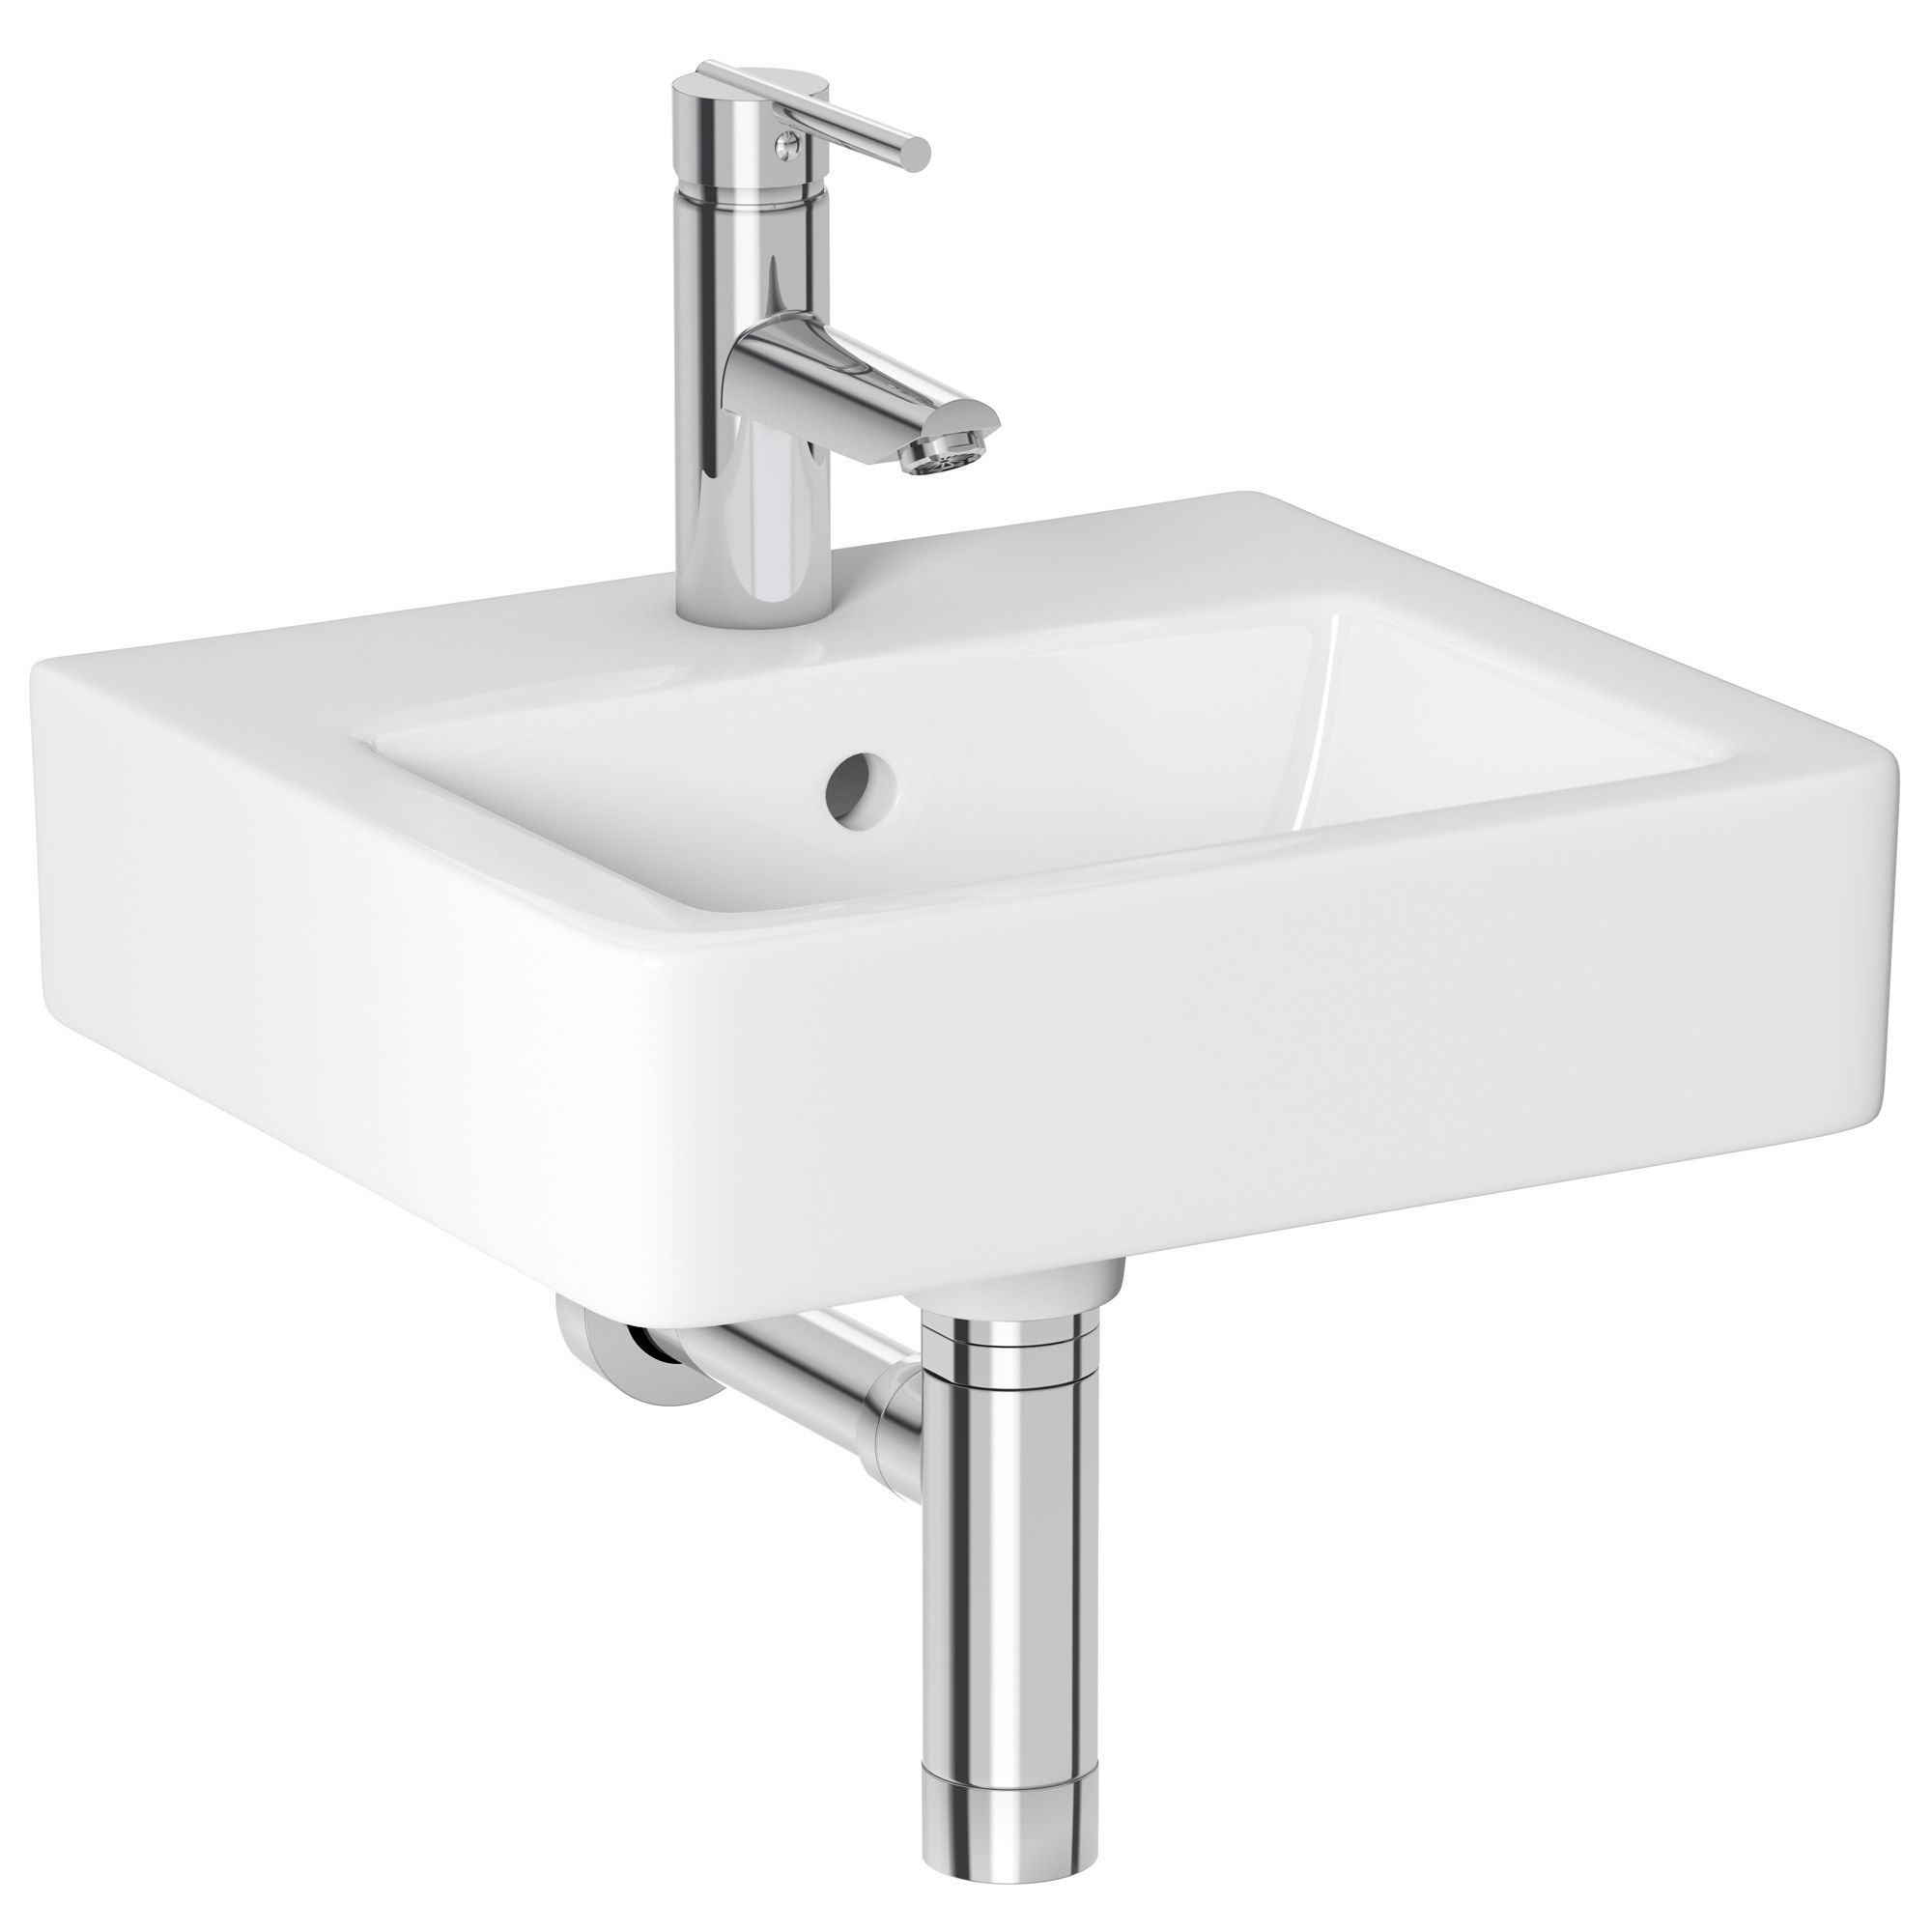 Bathroom Sinks B&Q cooke & lewis alexas square cloakroom basin | departments | diy at